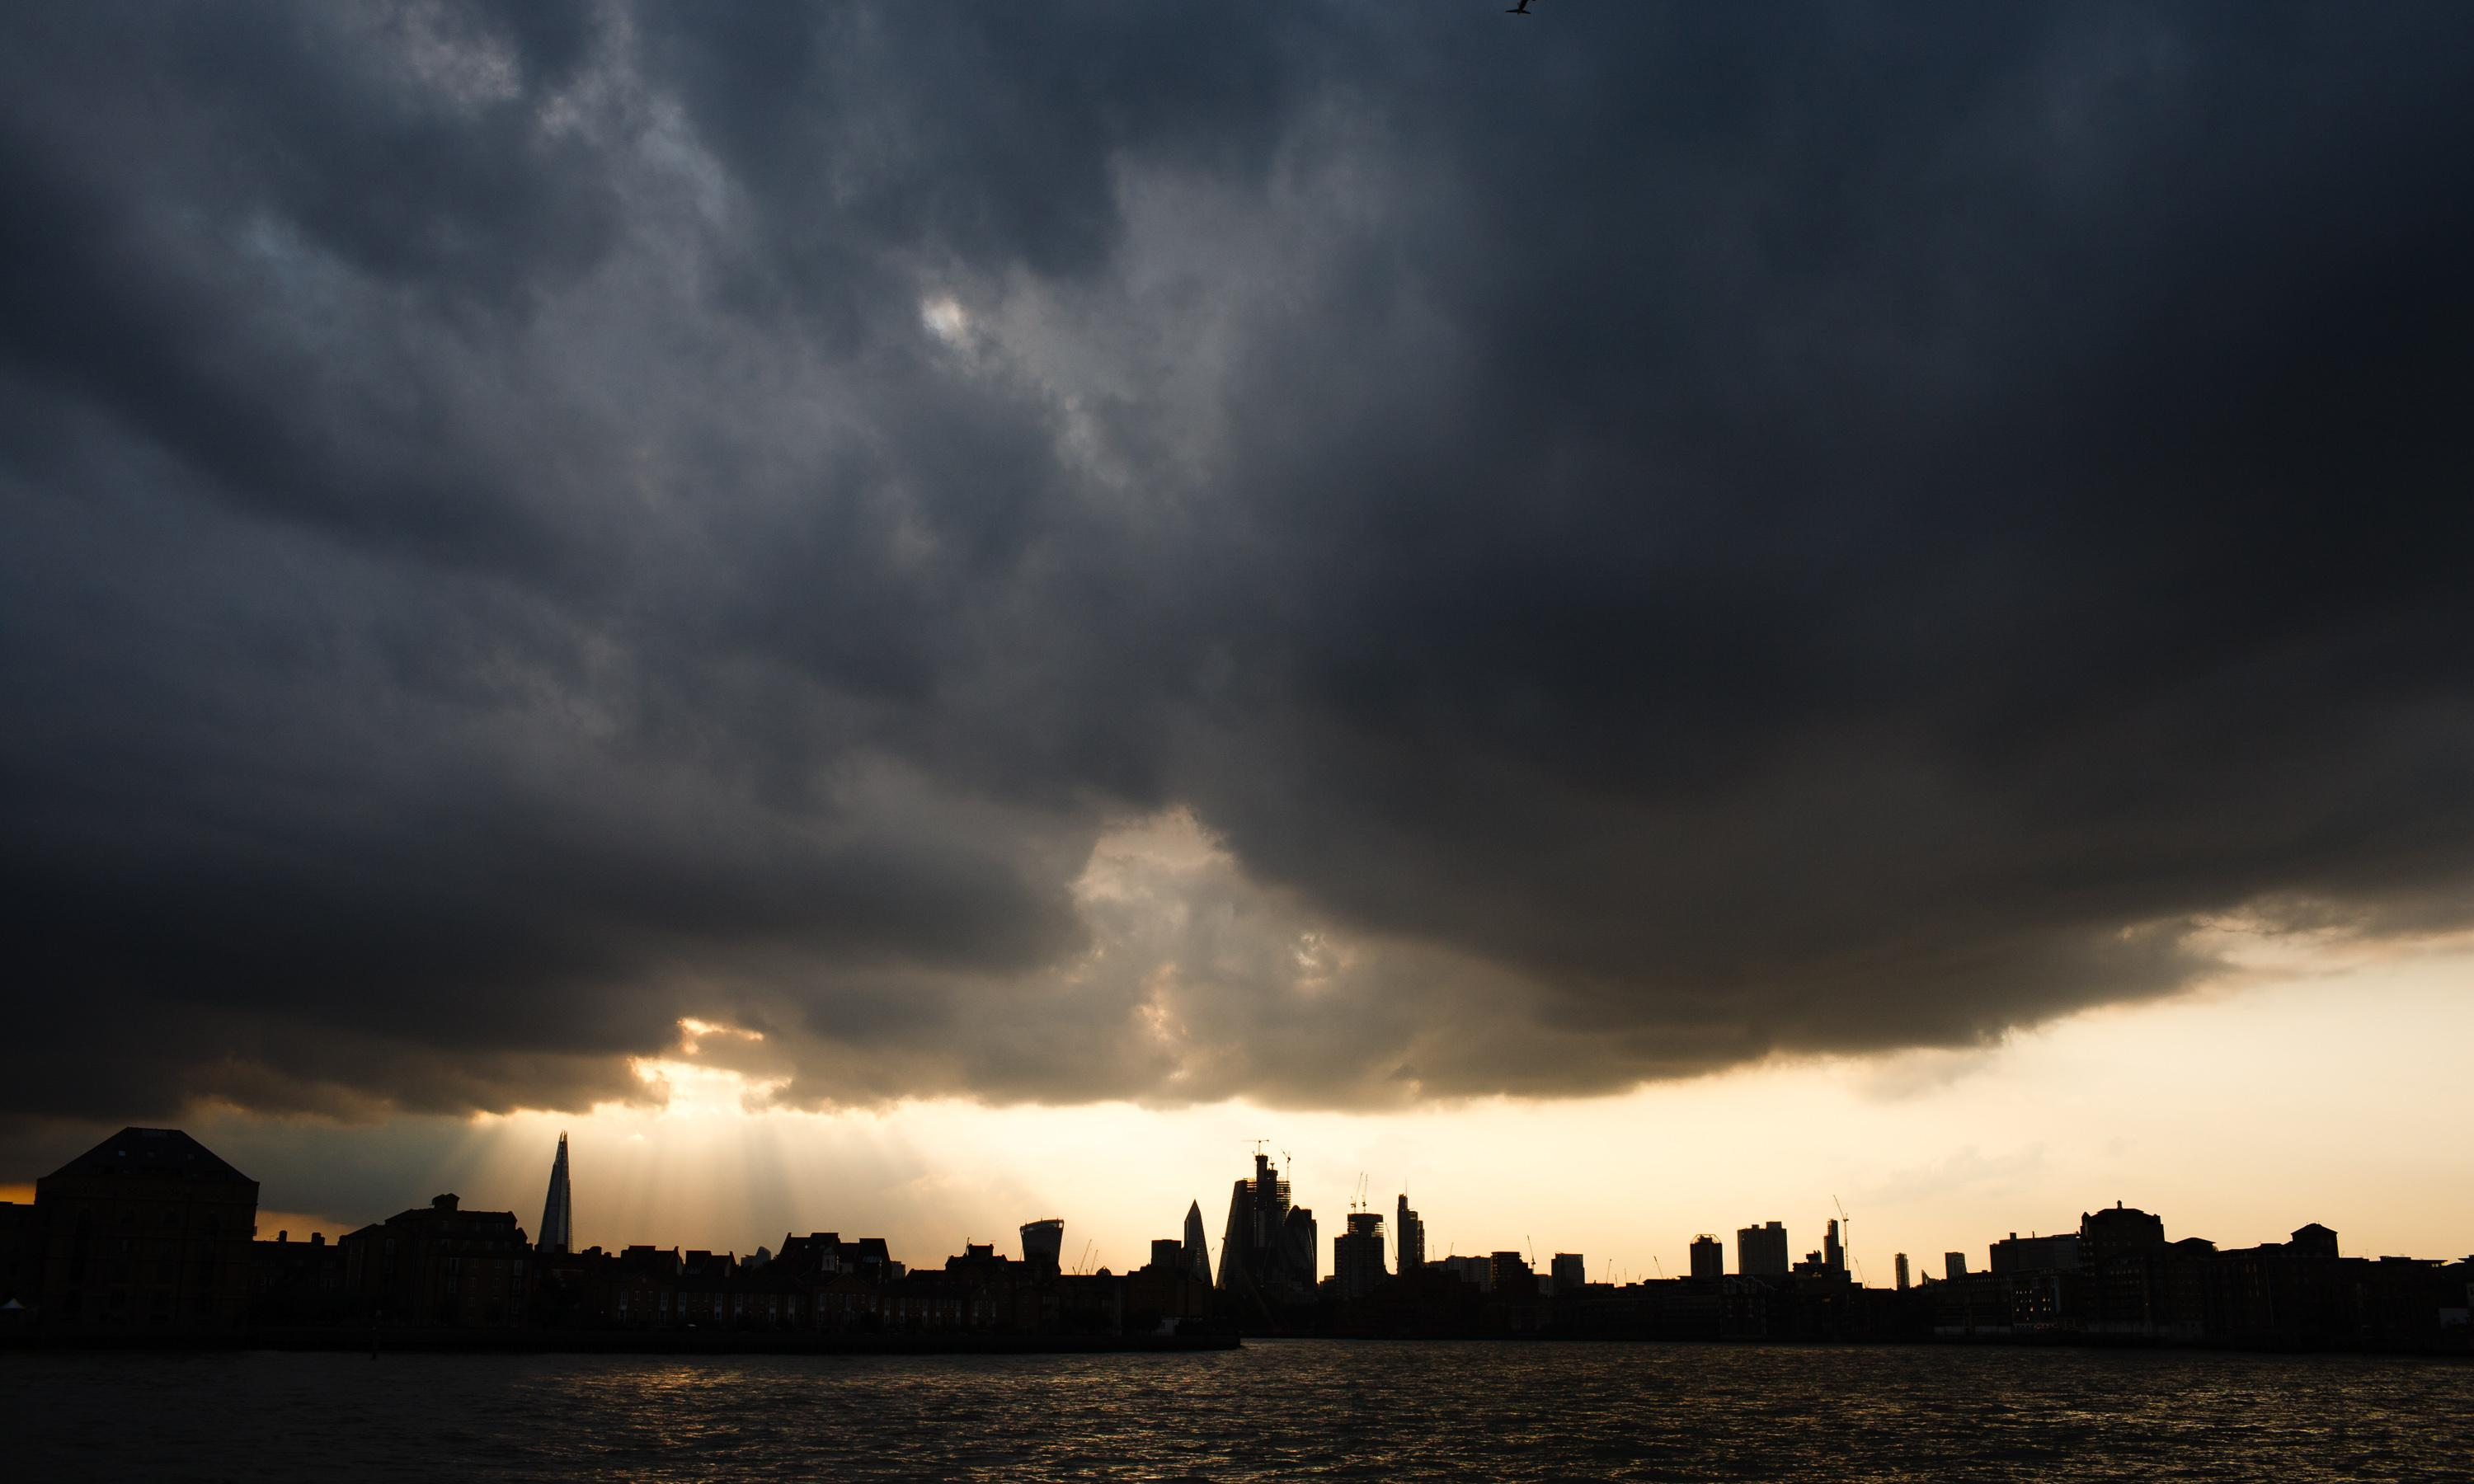 Storm ahead? Here's how to prepare for a financial crisis